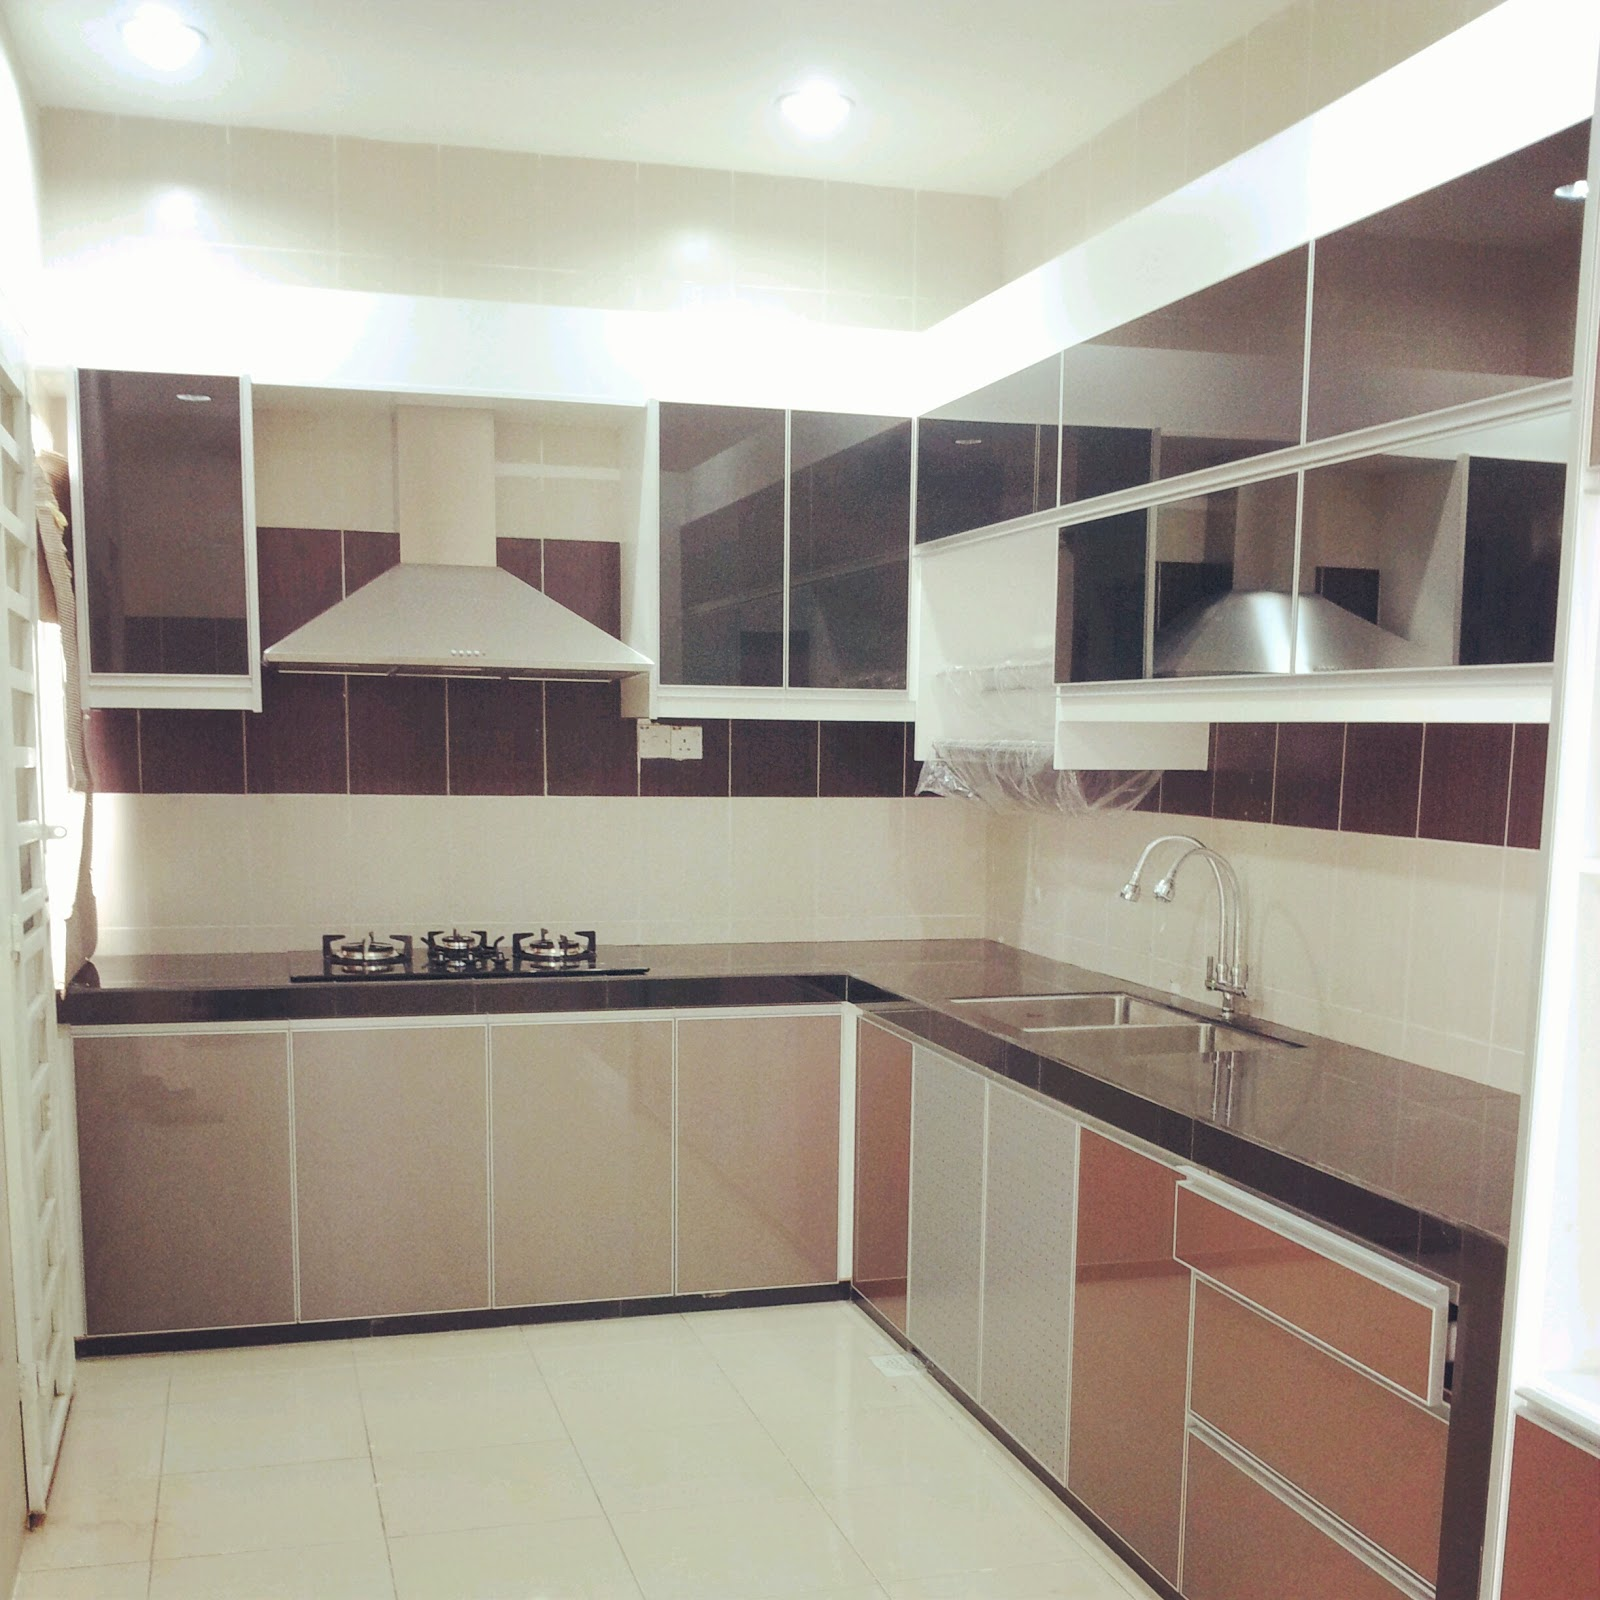 Kitchen Cabinet Manufacturer Malaysia Intended For Your: Kitchen Cabinet Murah Klang